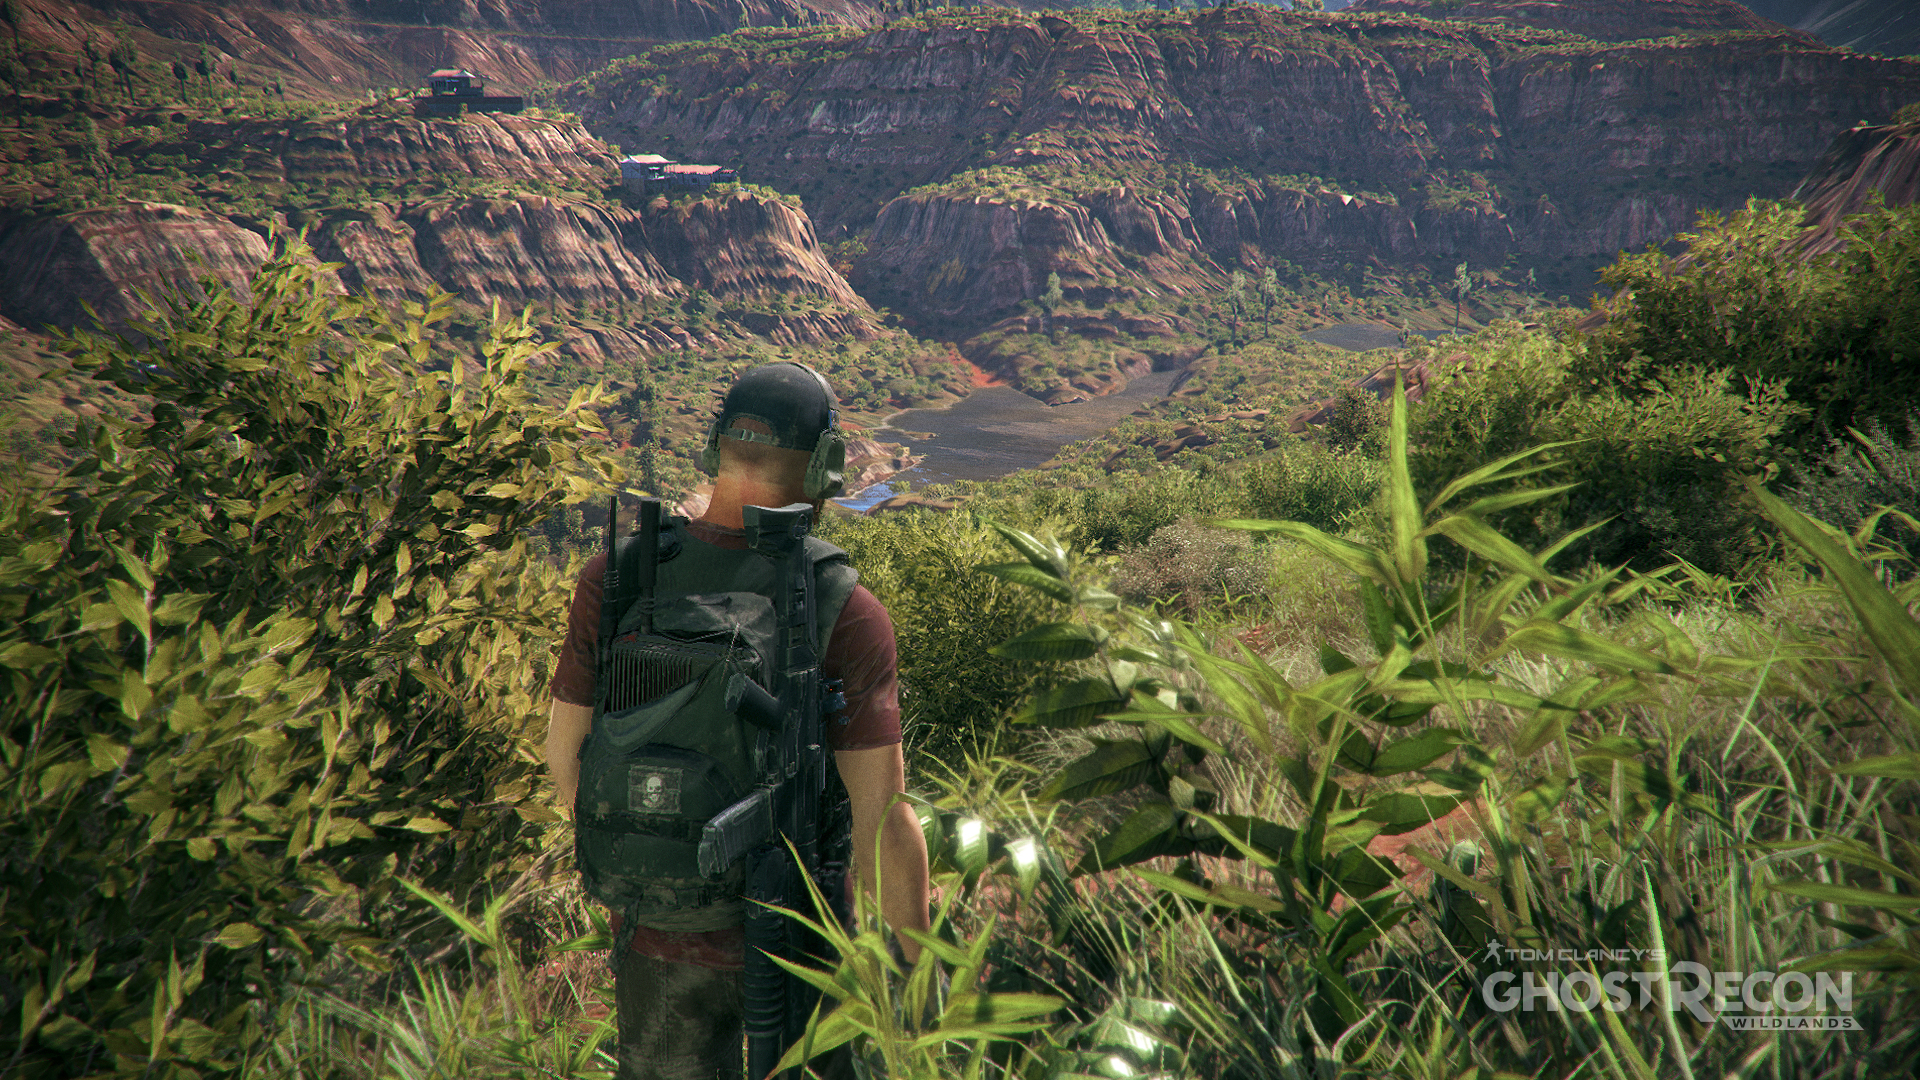 Ghost Recon Wildlands Karte.Tom Clancy S Ghost Recon Wildlands Riesige Open World Map